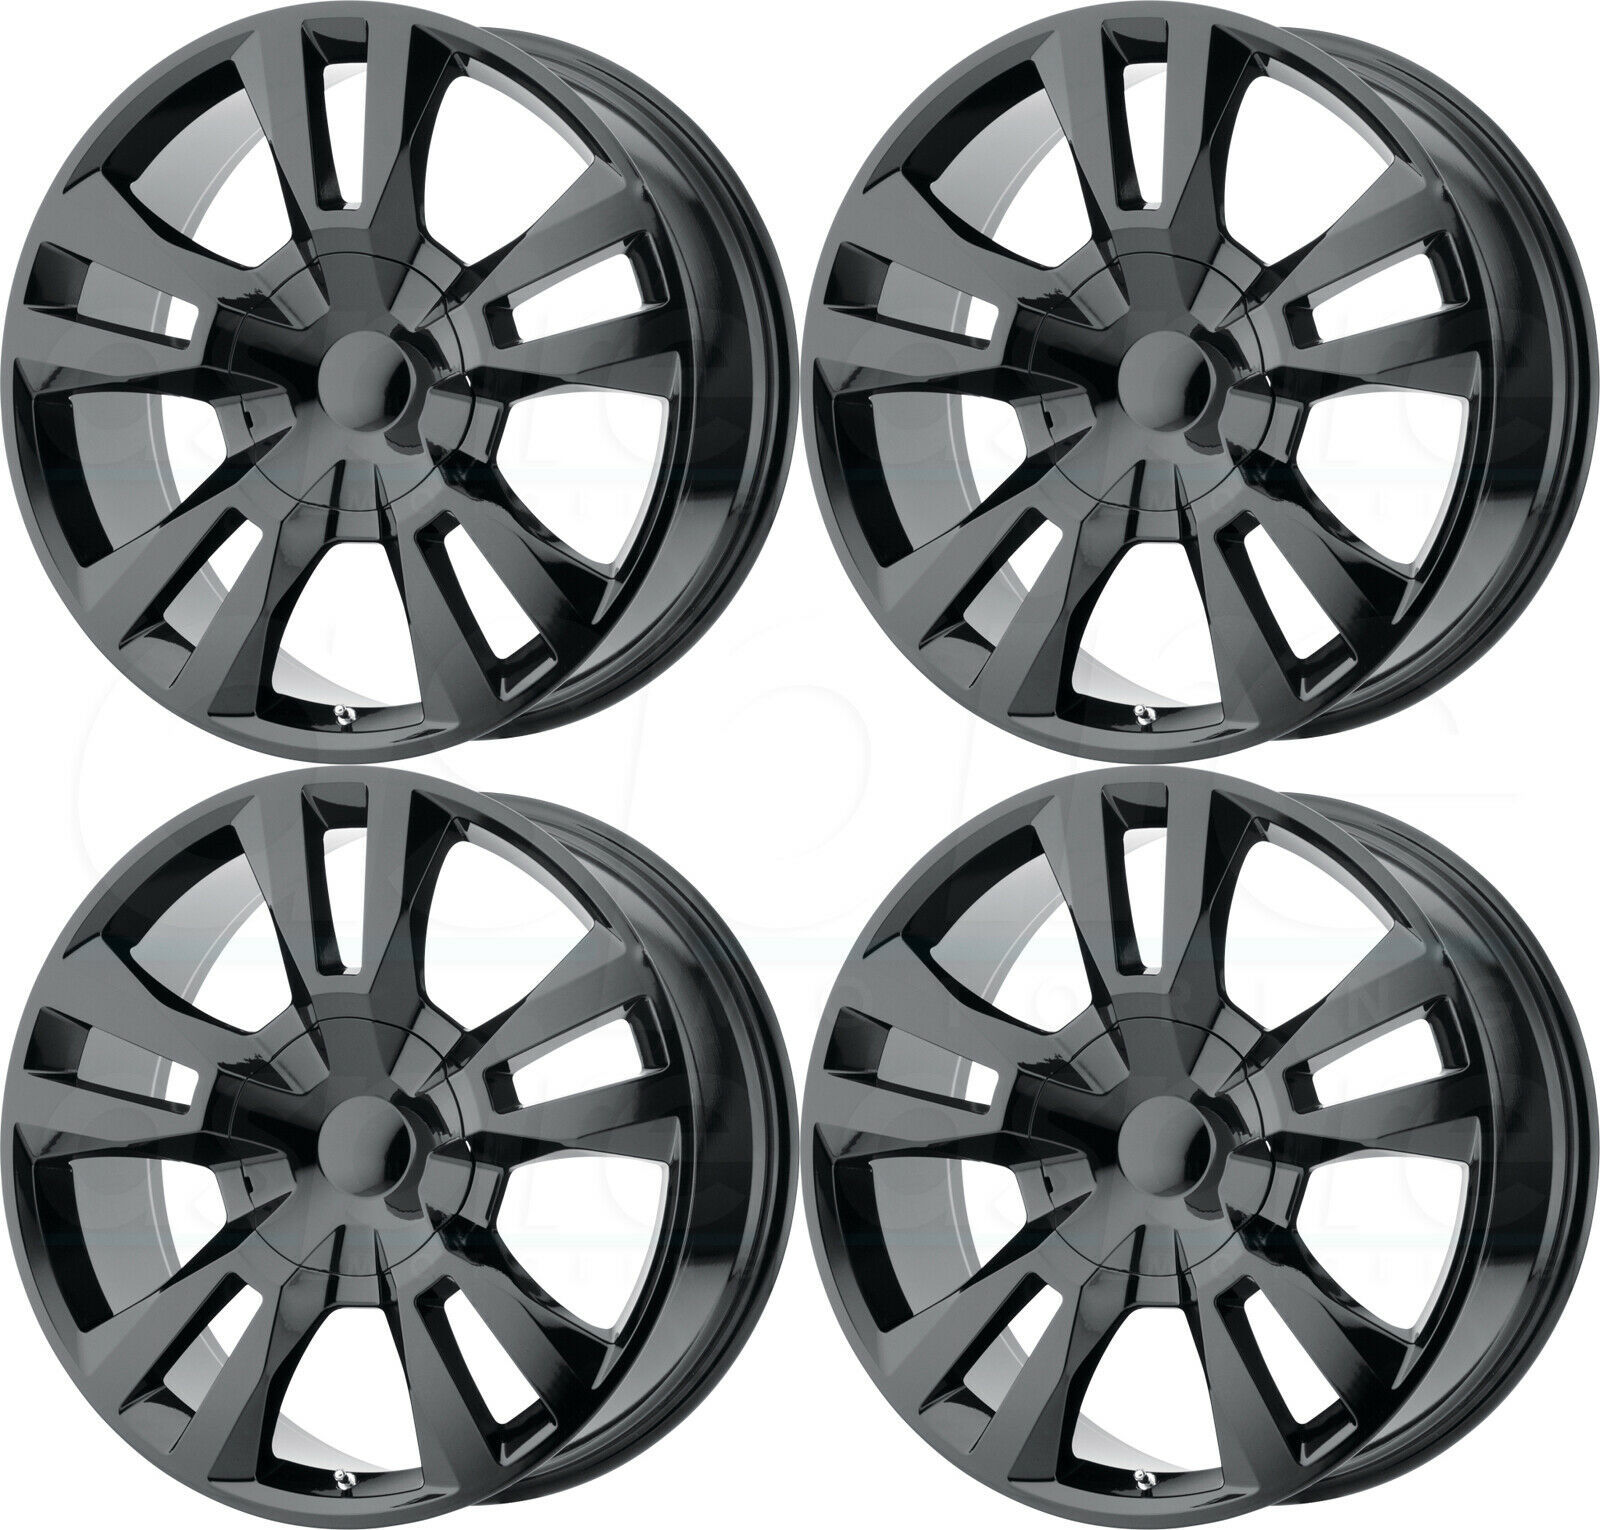 Primary image for 24x10 OE Creations PR188 6x5.5/6x139.7 31 Gloss Black Wheels Rims Set(4)